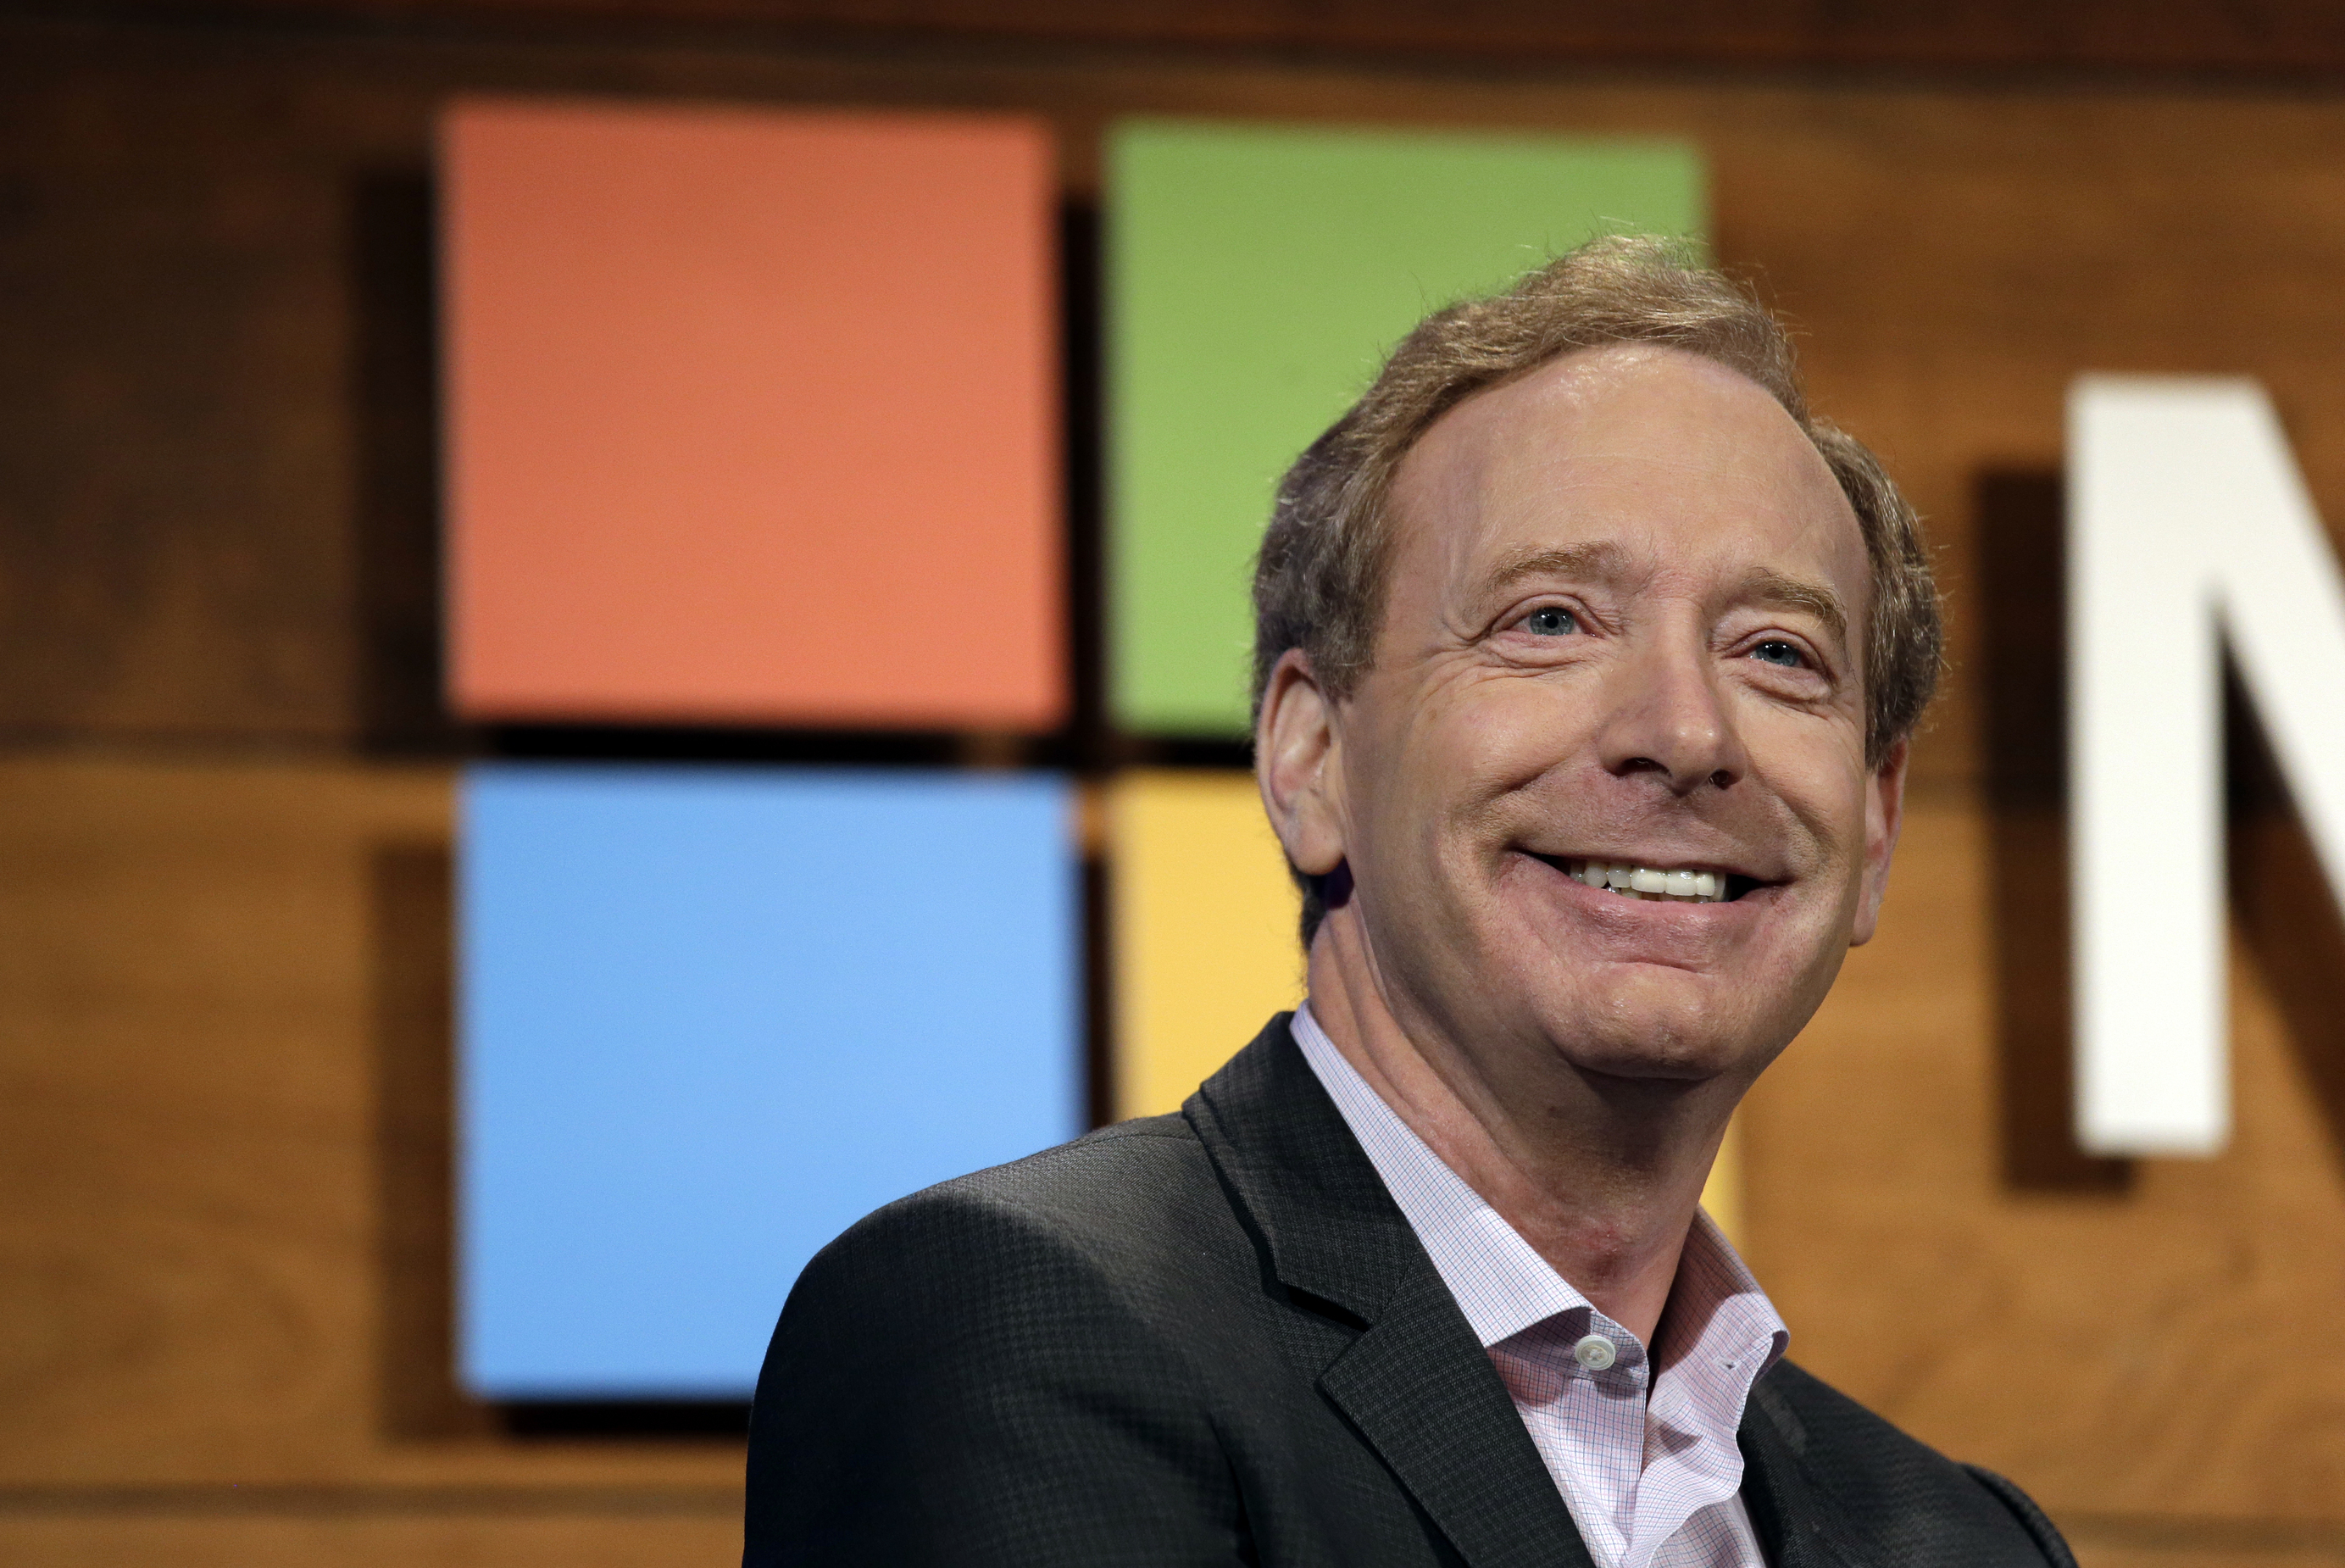 FILE - In this Nov. 30, 2016 file photo, Microsoft's Brad Smith, president and chief legal officer, speaks at the annual Microsoft shareholders meeting in Bellevue, Wash. Microsoft has pledged $500 million to address homelessness and develop affordable housing in response to the Seattle region's widening affordability gap. Most of the money will be aimed at increasing housing options in the Puget Sound region for low- and middle-income workers at a time when they're being priced out of Seattle and some of its suburbs, and when the vast majority of new buildings target wealthier renters, said Smith. (AP Photo/Elaine Thompson, File)